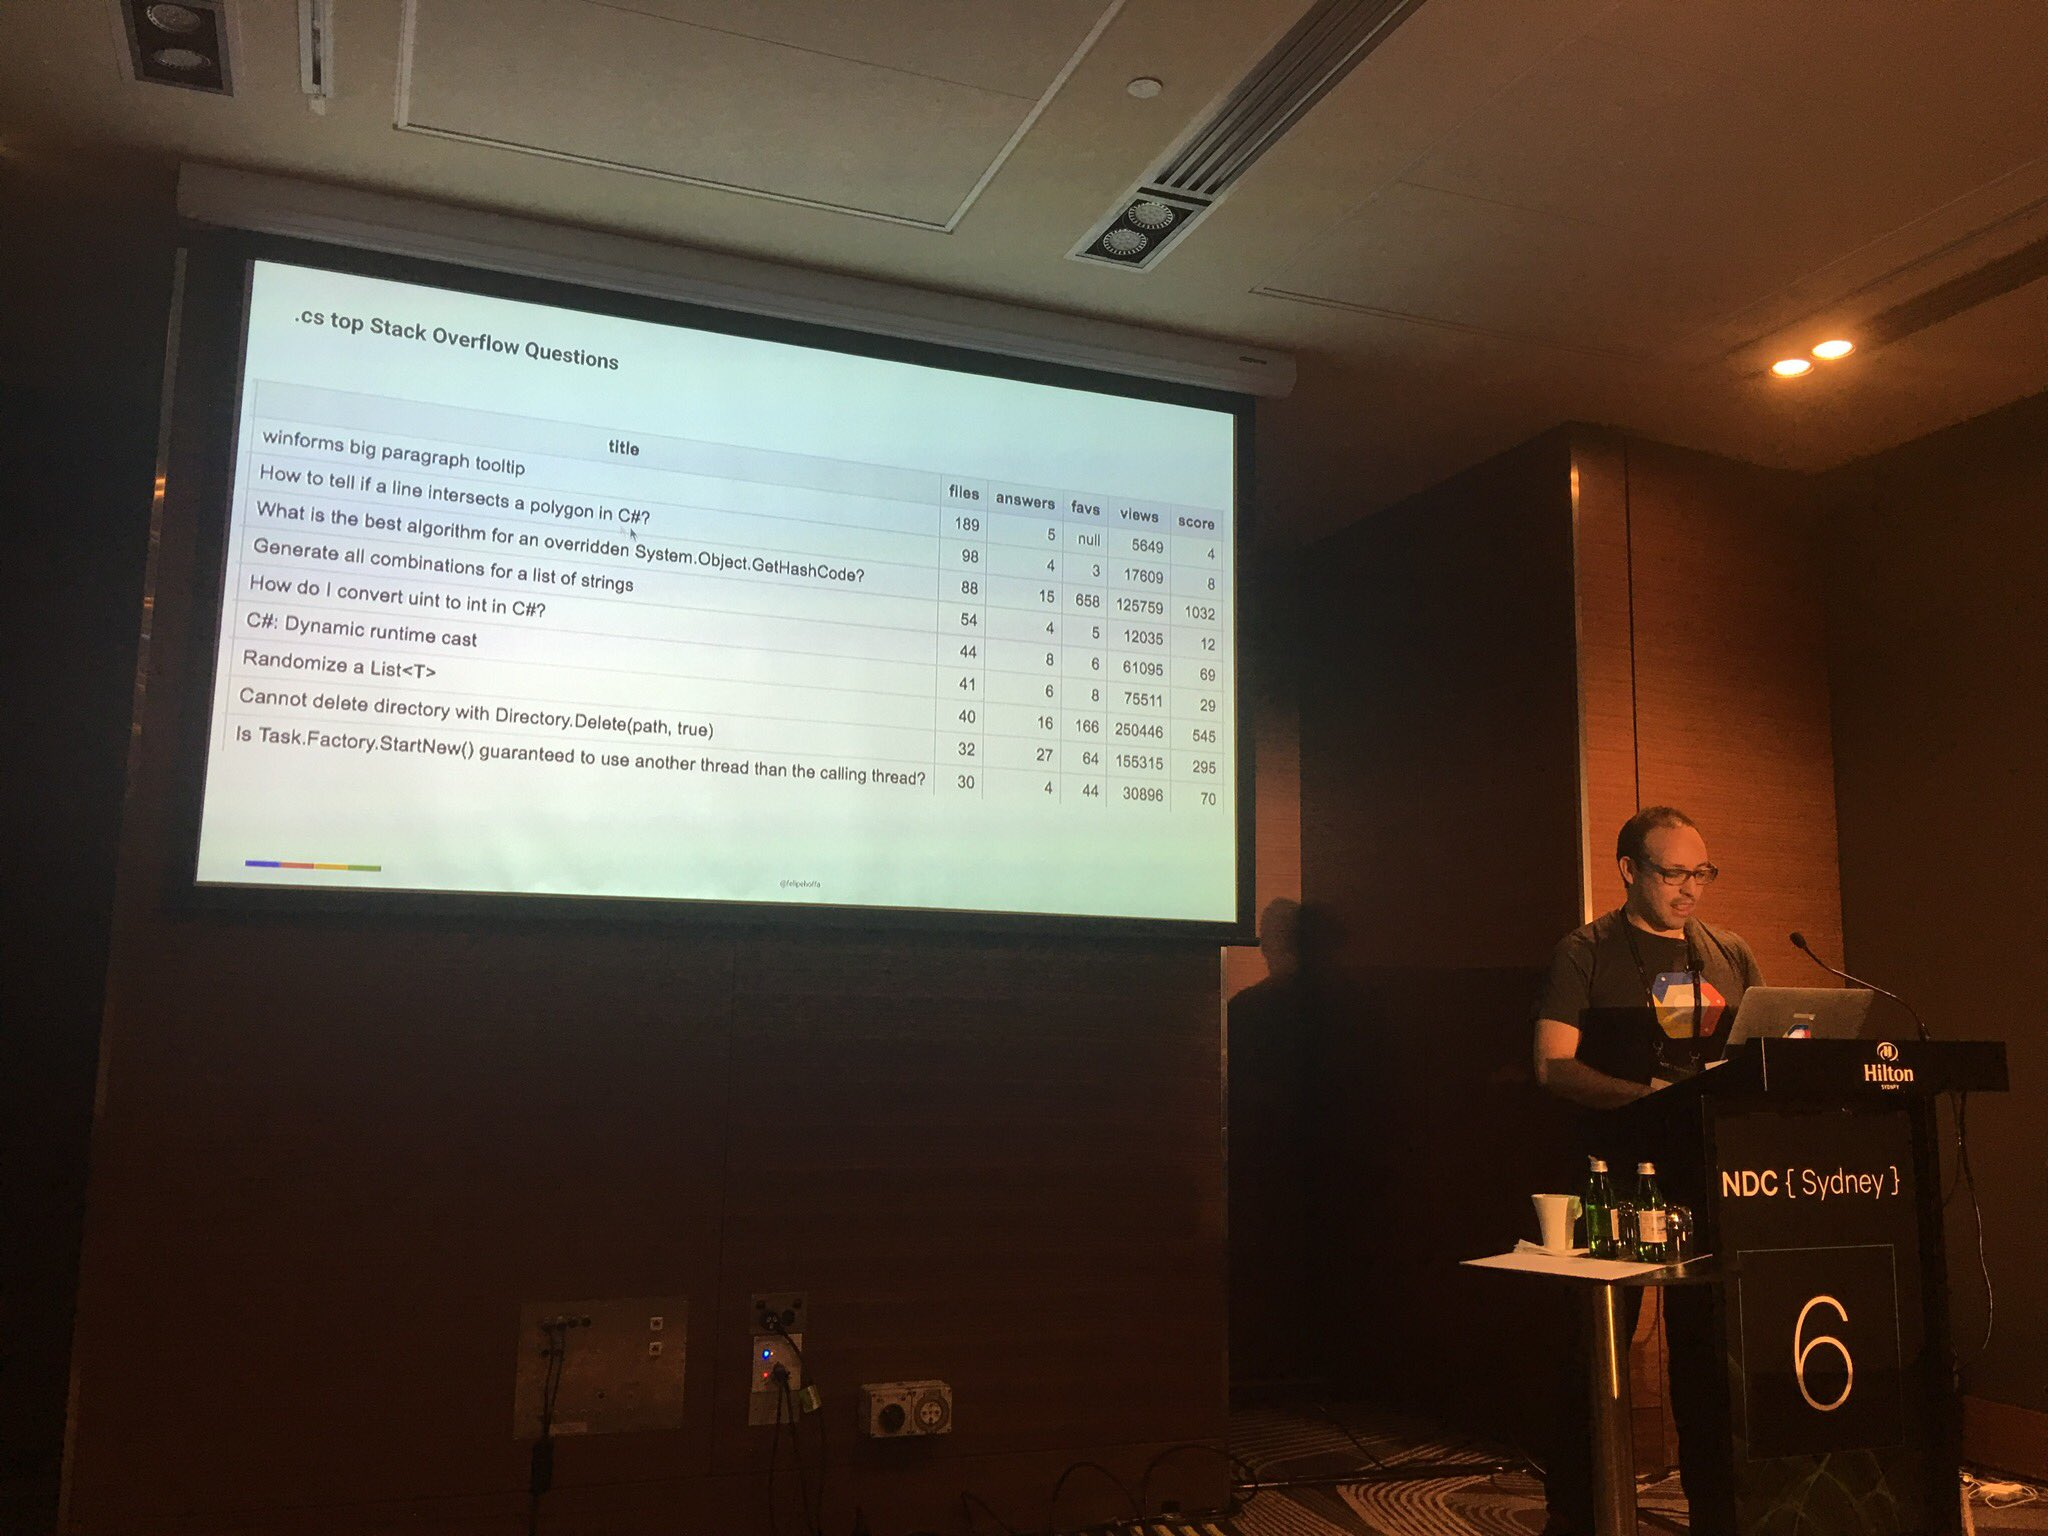 Linking @github with @StackOverflow questions #BigData #ndcSydney https://t.co/6NR3RToMRw